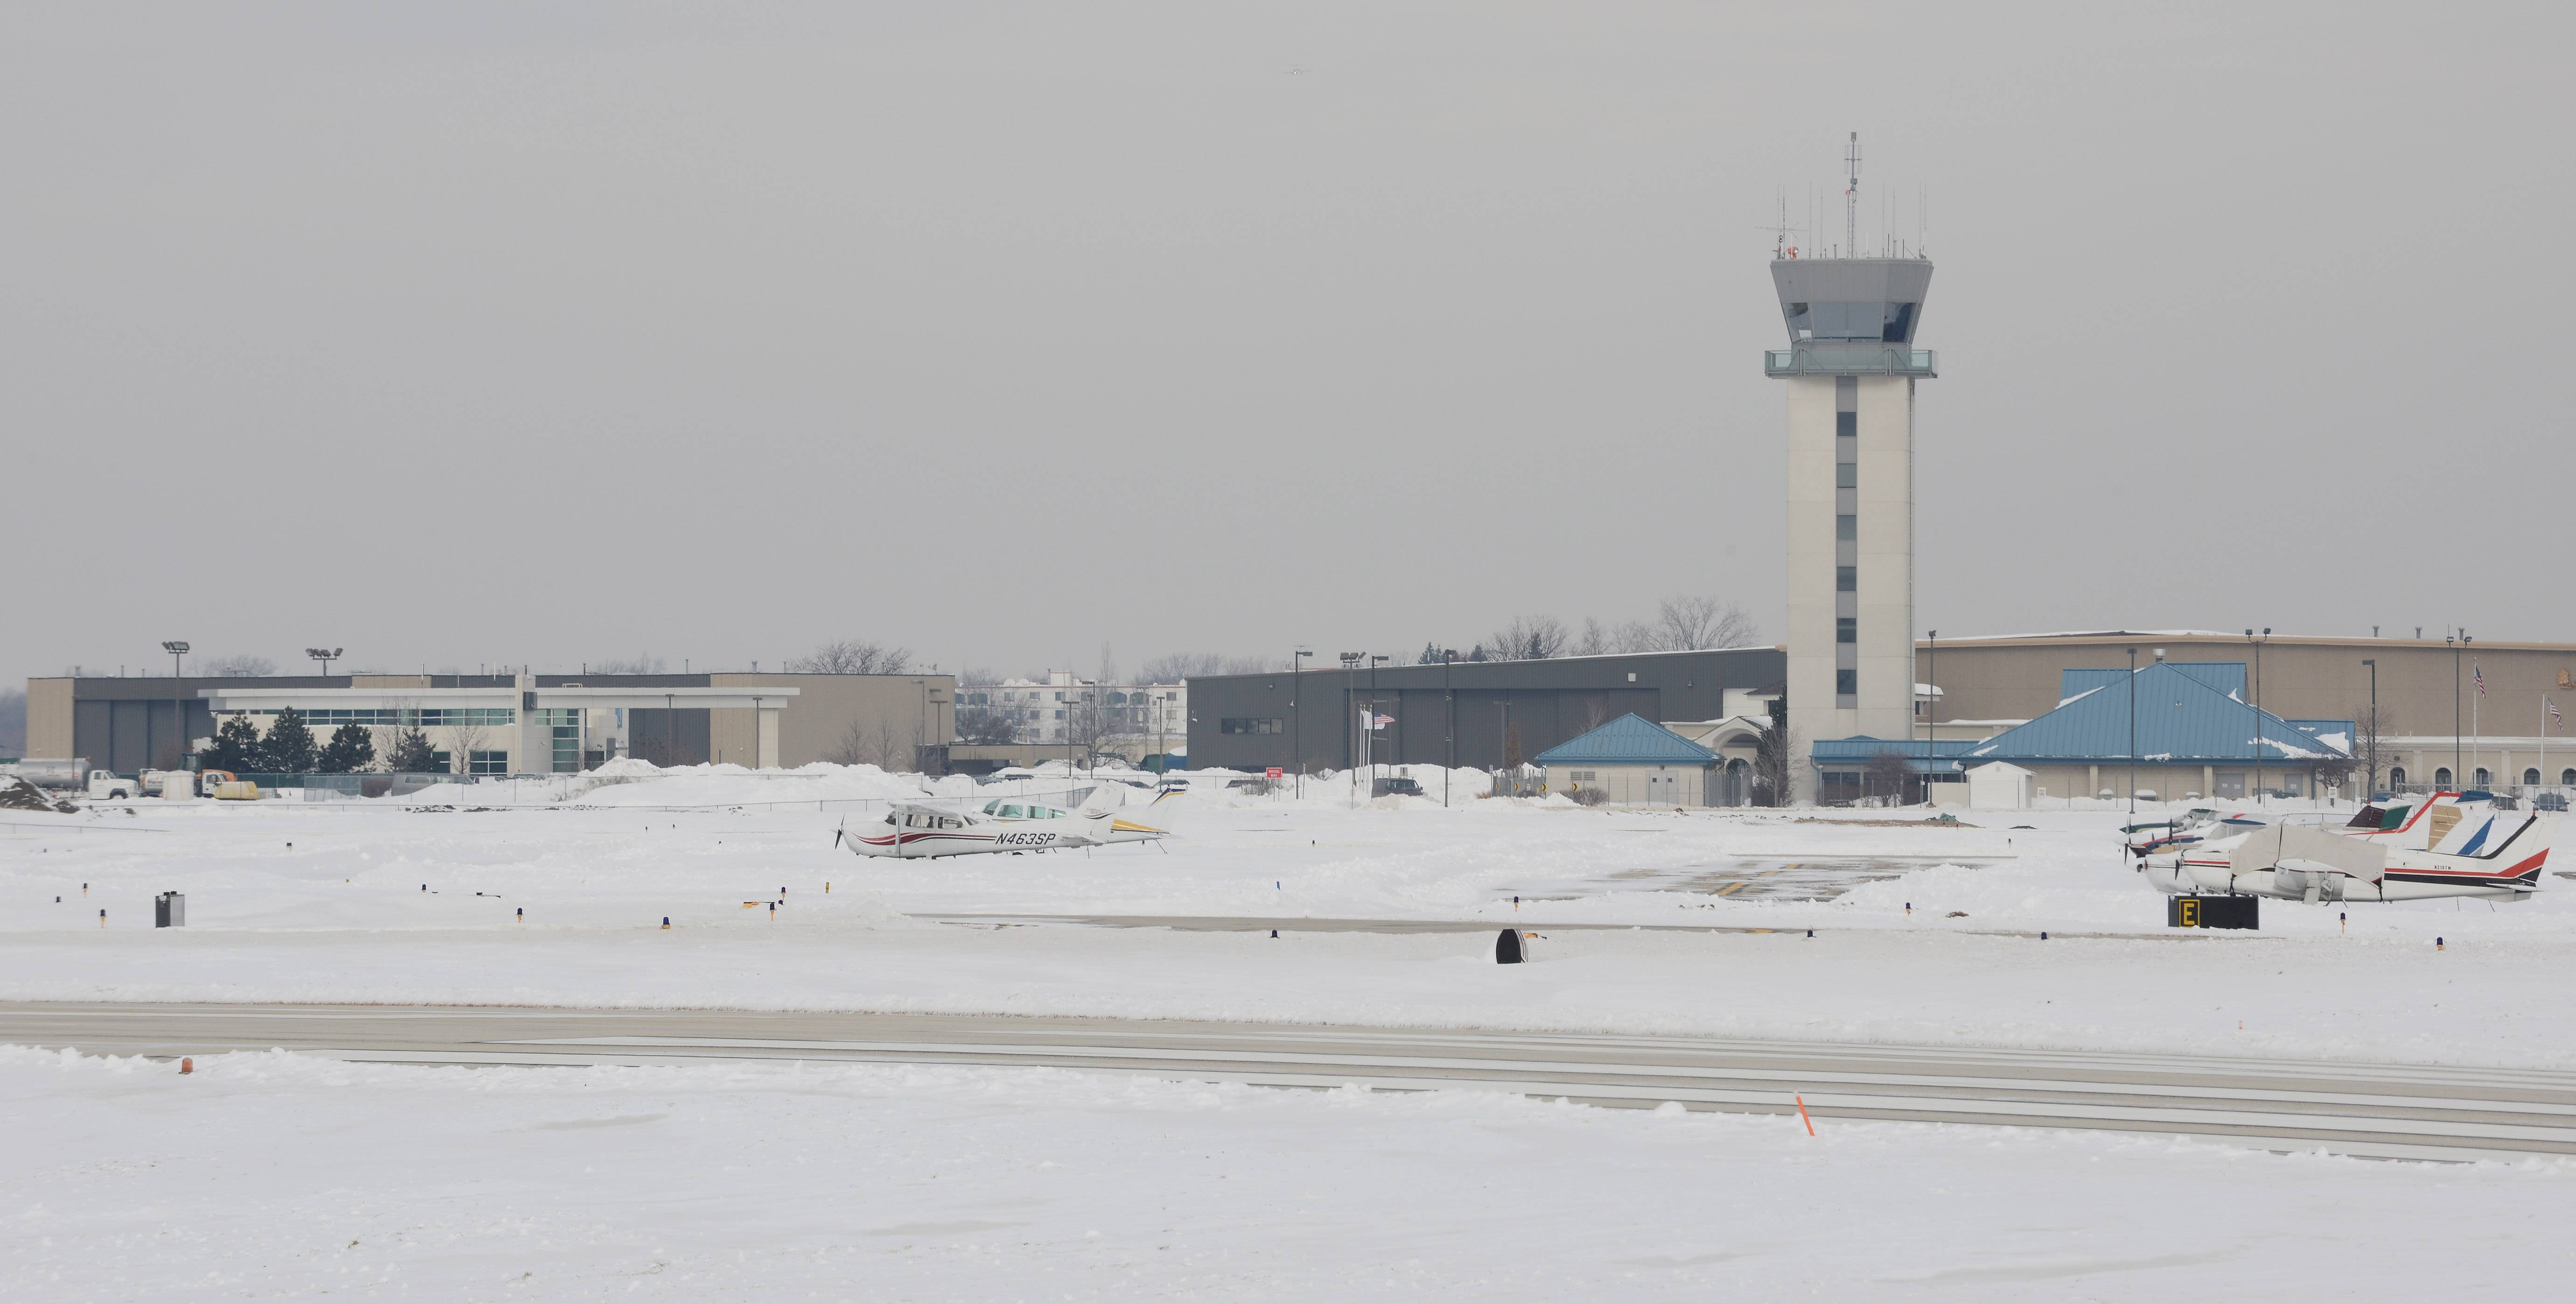 Chicago Executive Airport officials announced Friday they will eliminate any consideration of extending its runways beyond the facility's boundaries as part of its master planning process.